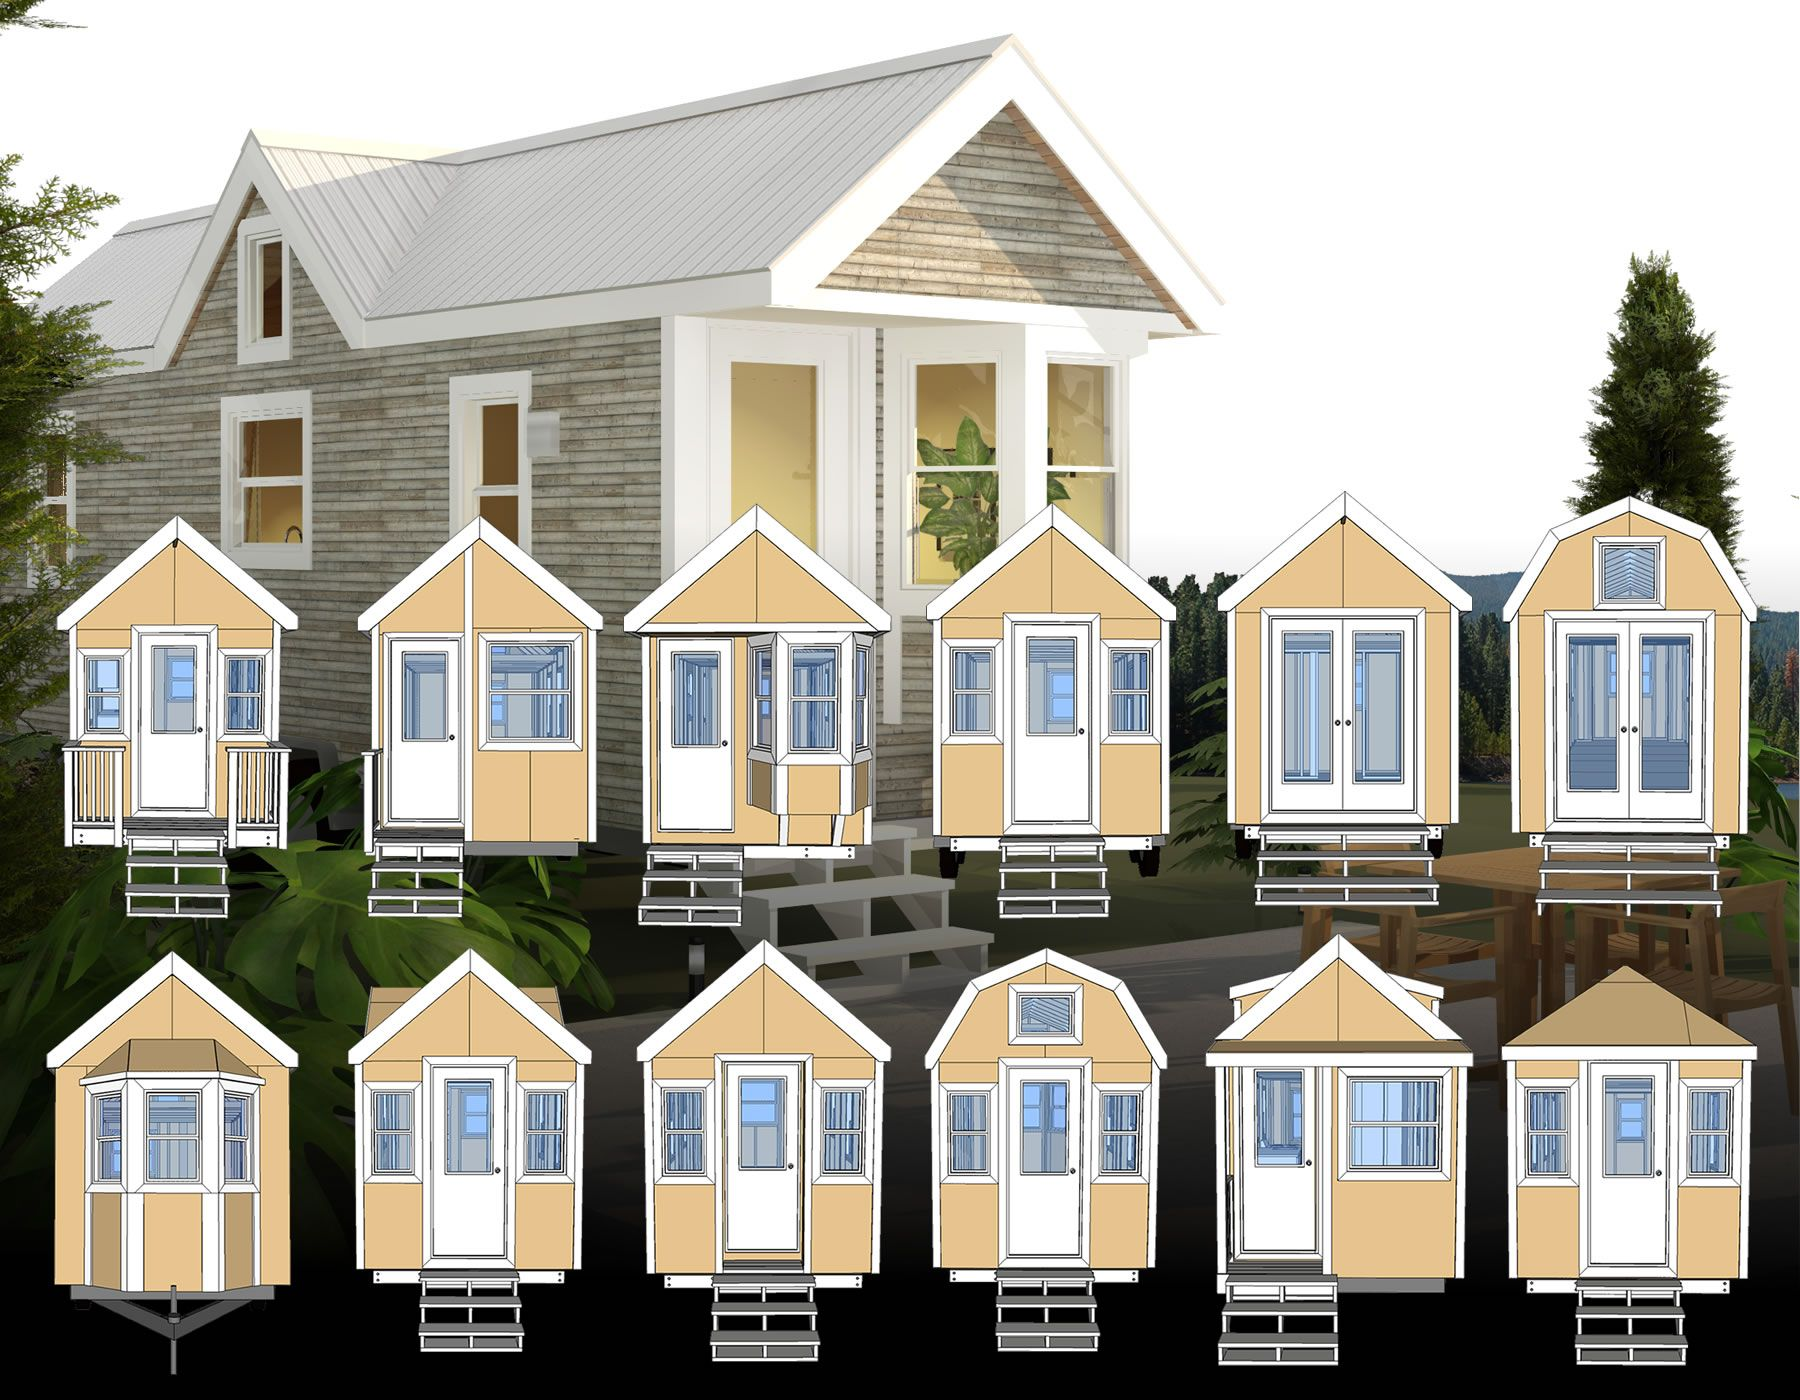 All twelve of these tiny house plans are designed with the same basic dimensions so